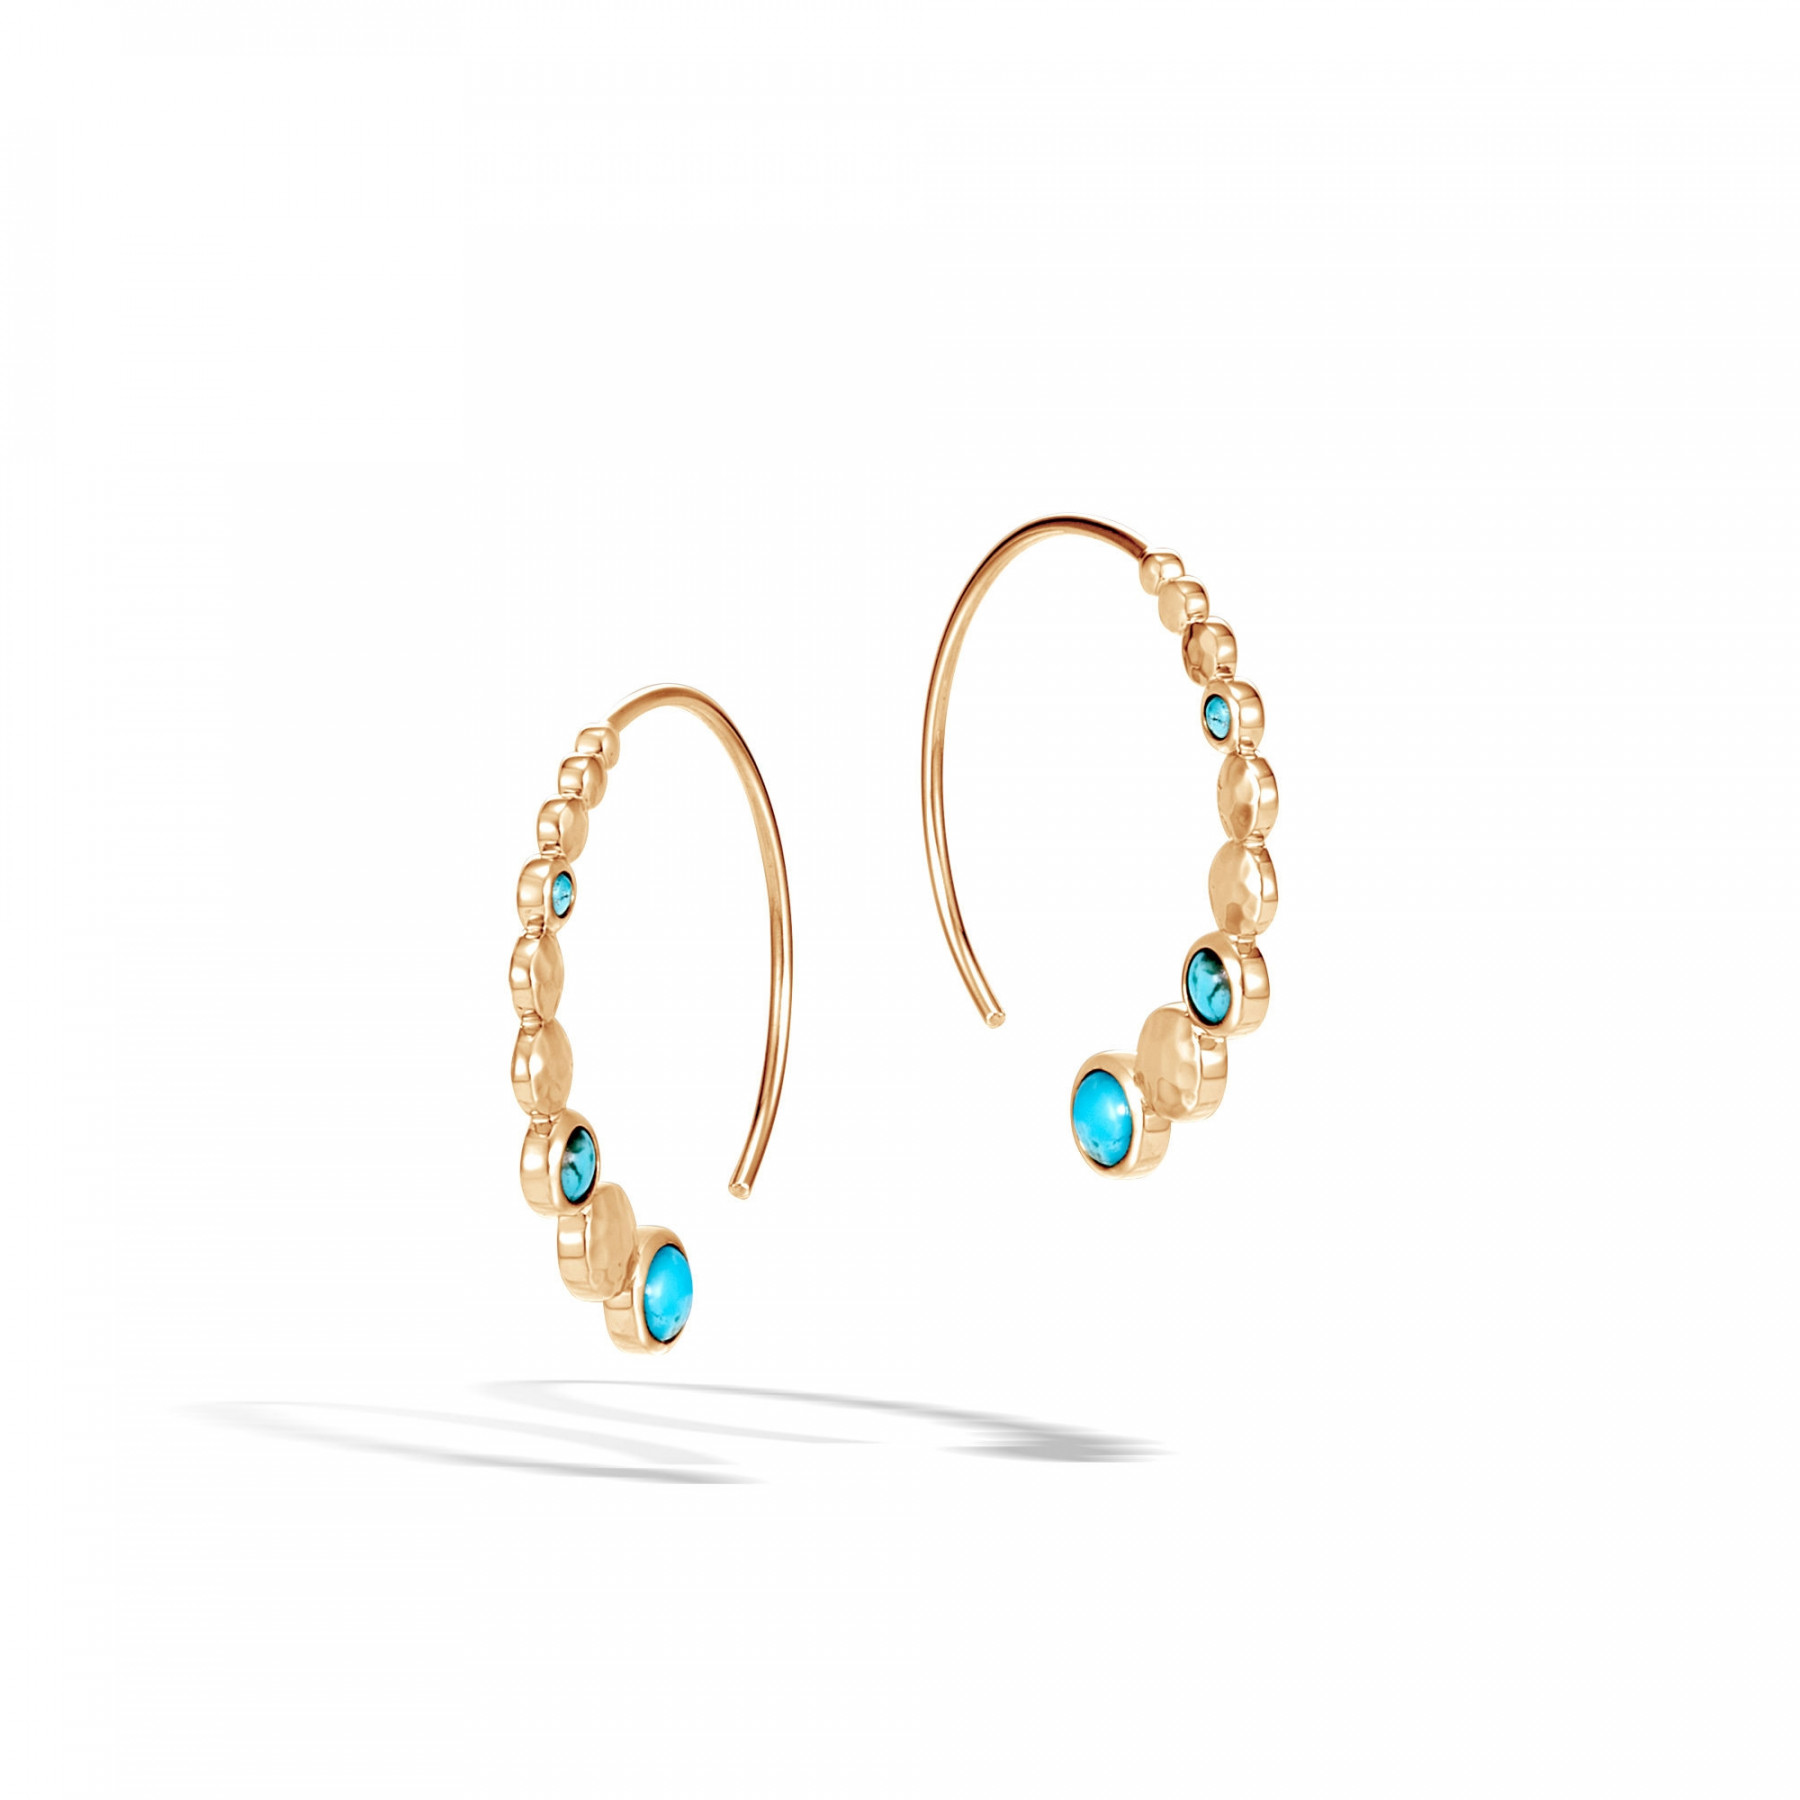 John Hardy Dot Small Turquoise Hoop Earrings in 18k Yellow Gold front view